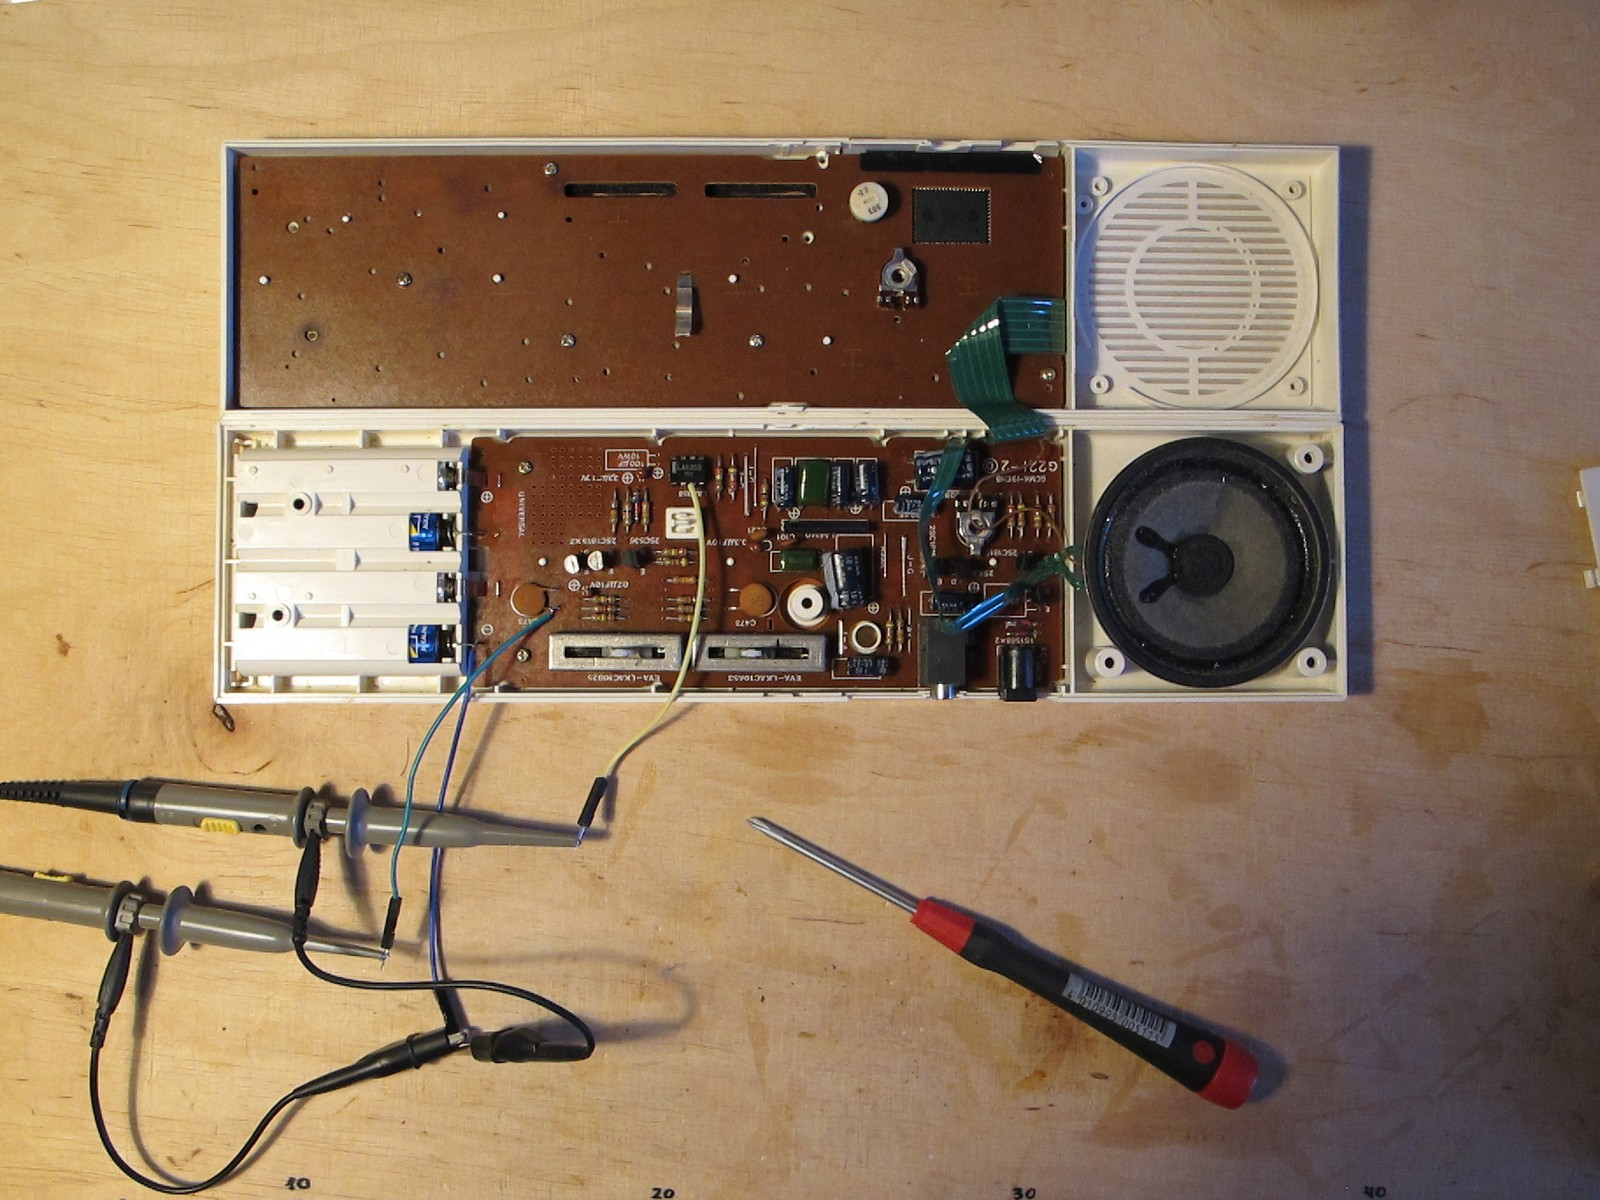 Casio VL-1 disassembled & tested